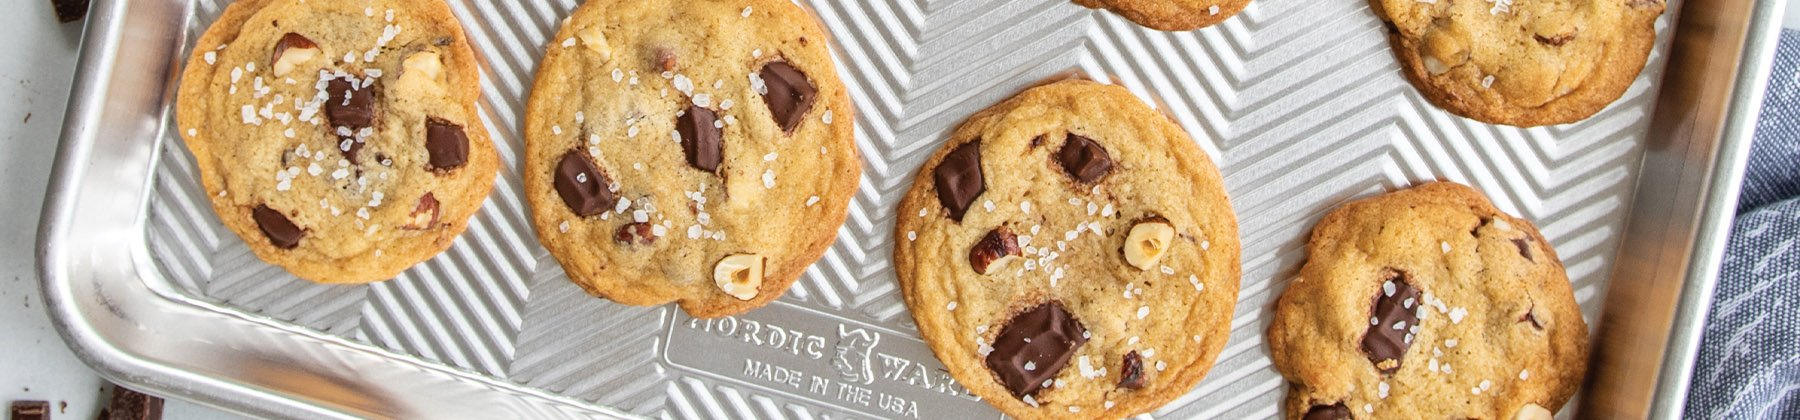 Photo of Nordic Ware baking sheet with Salted Chocolate Chip Cookies.